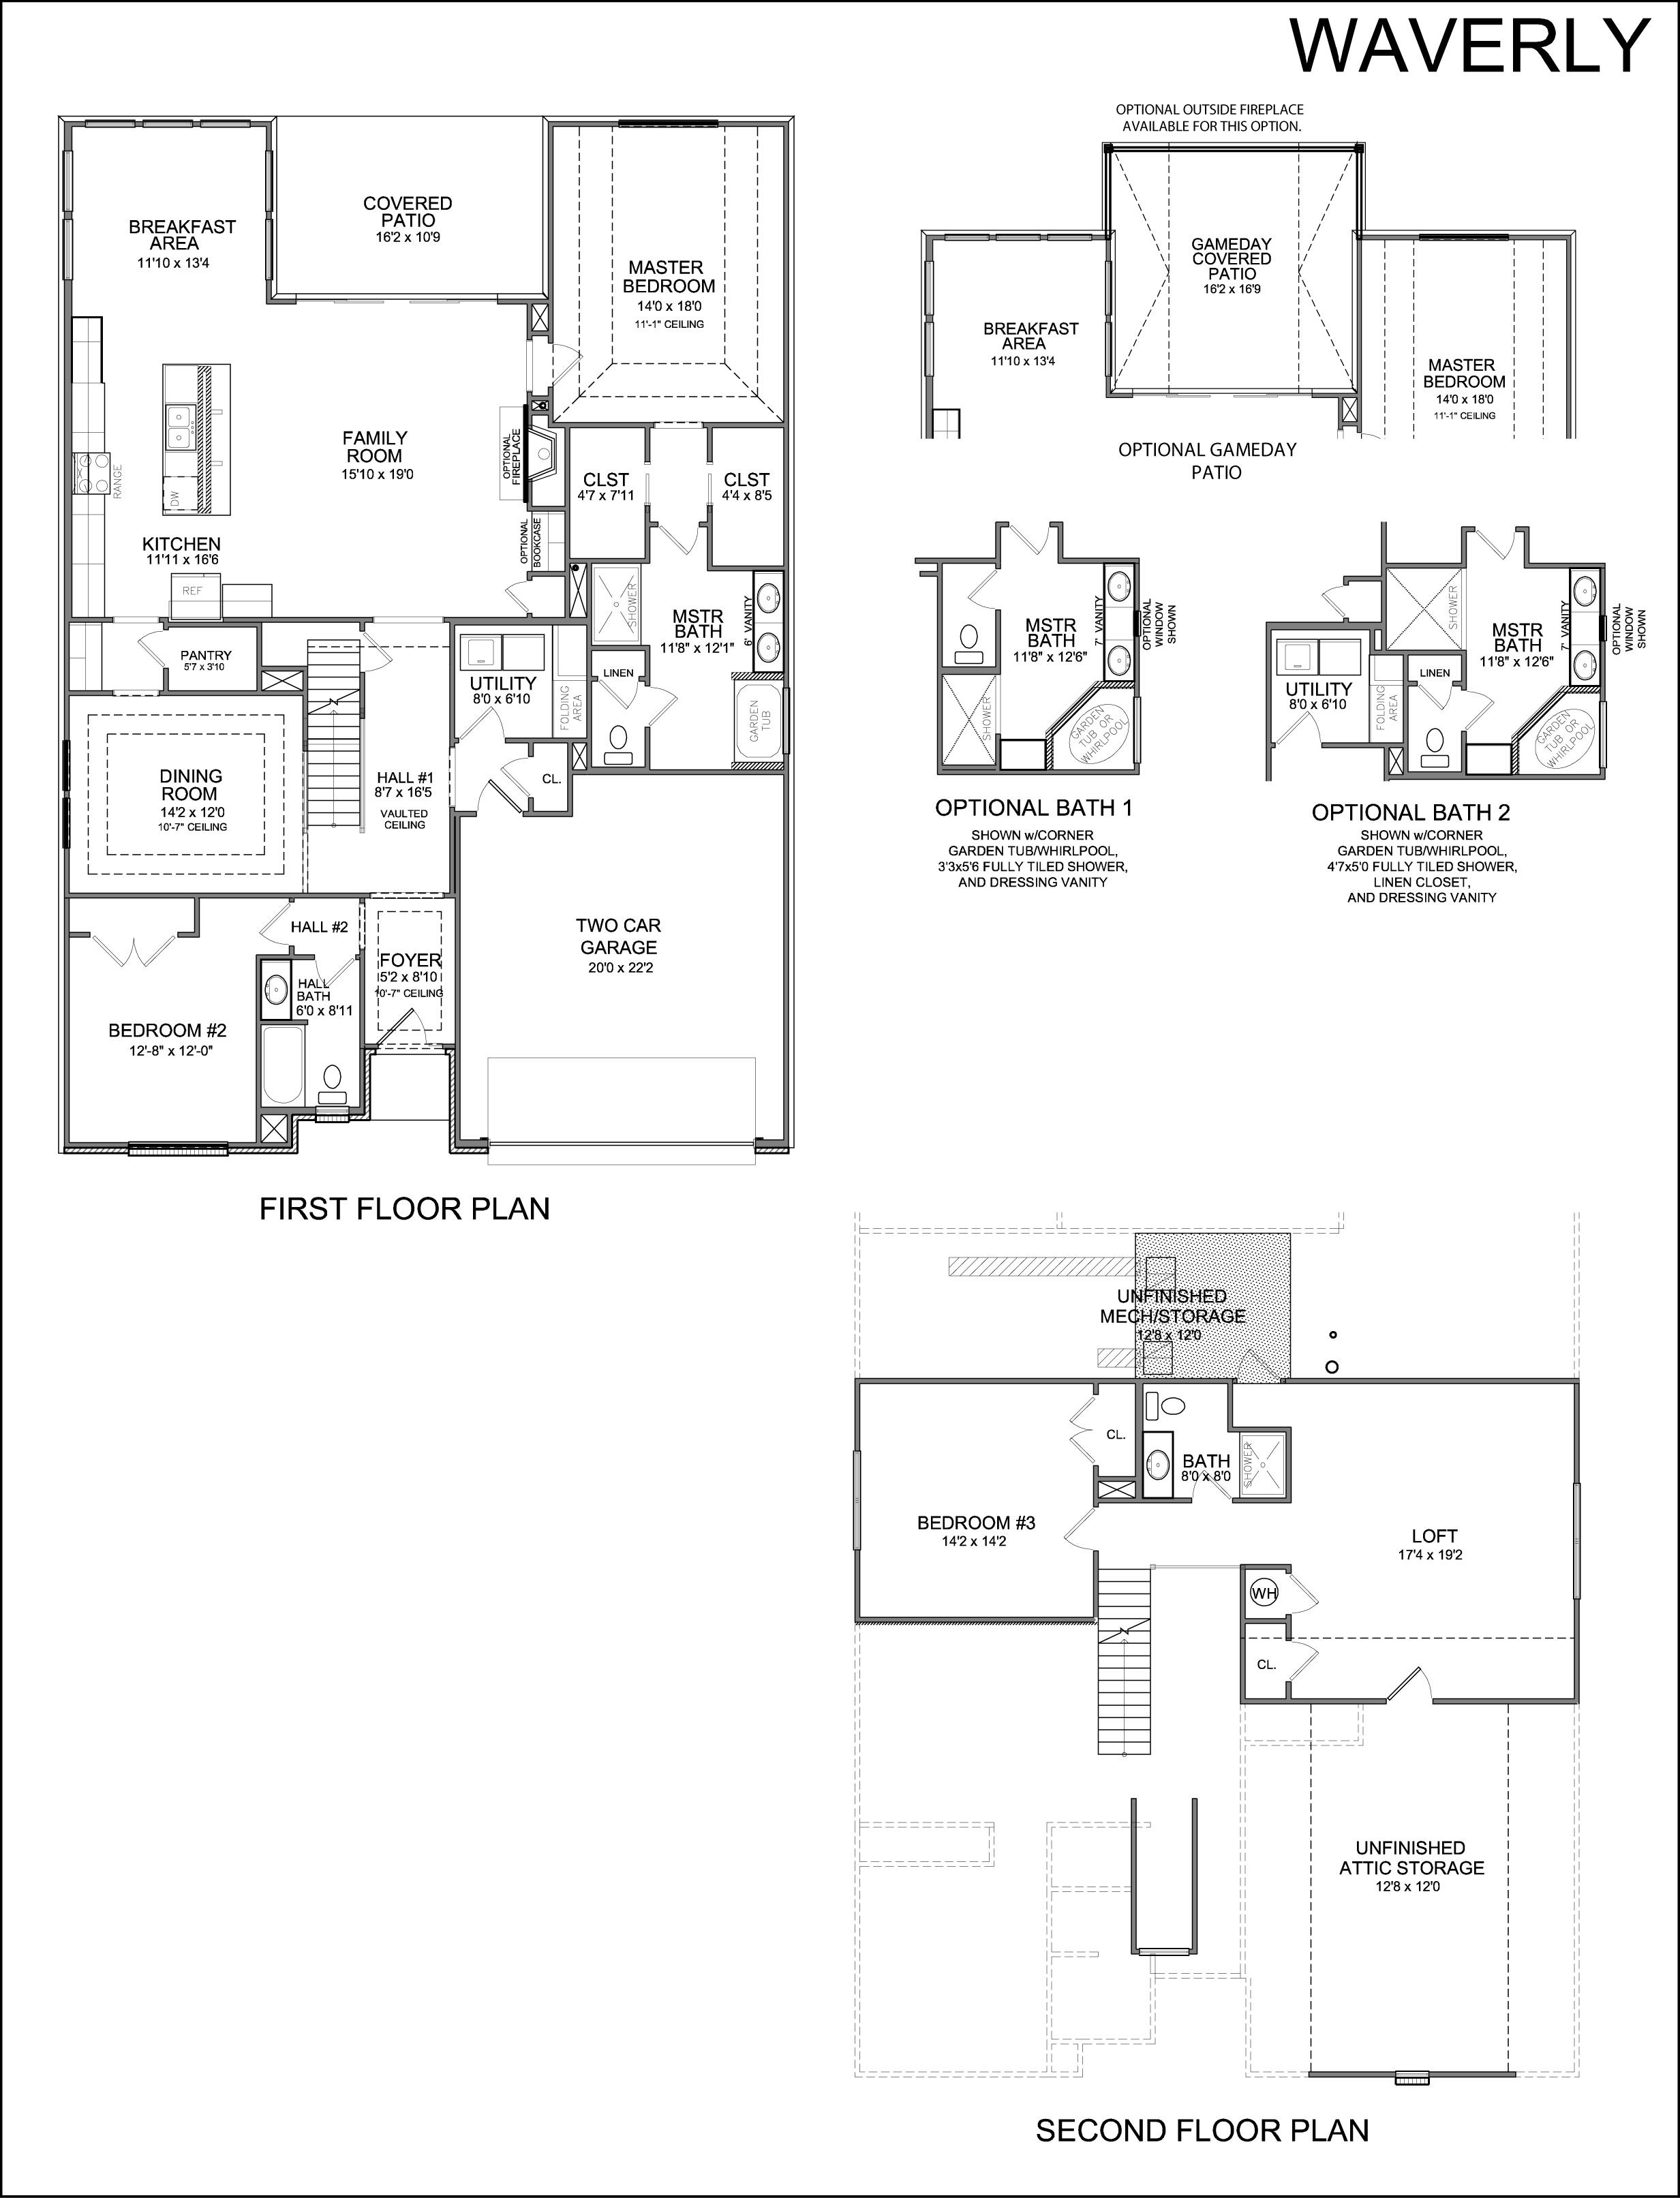 Center fireplace house plans house plans for Center chimney house plans